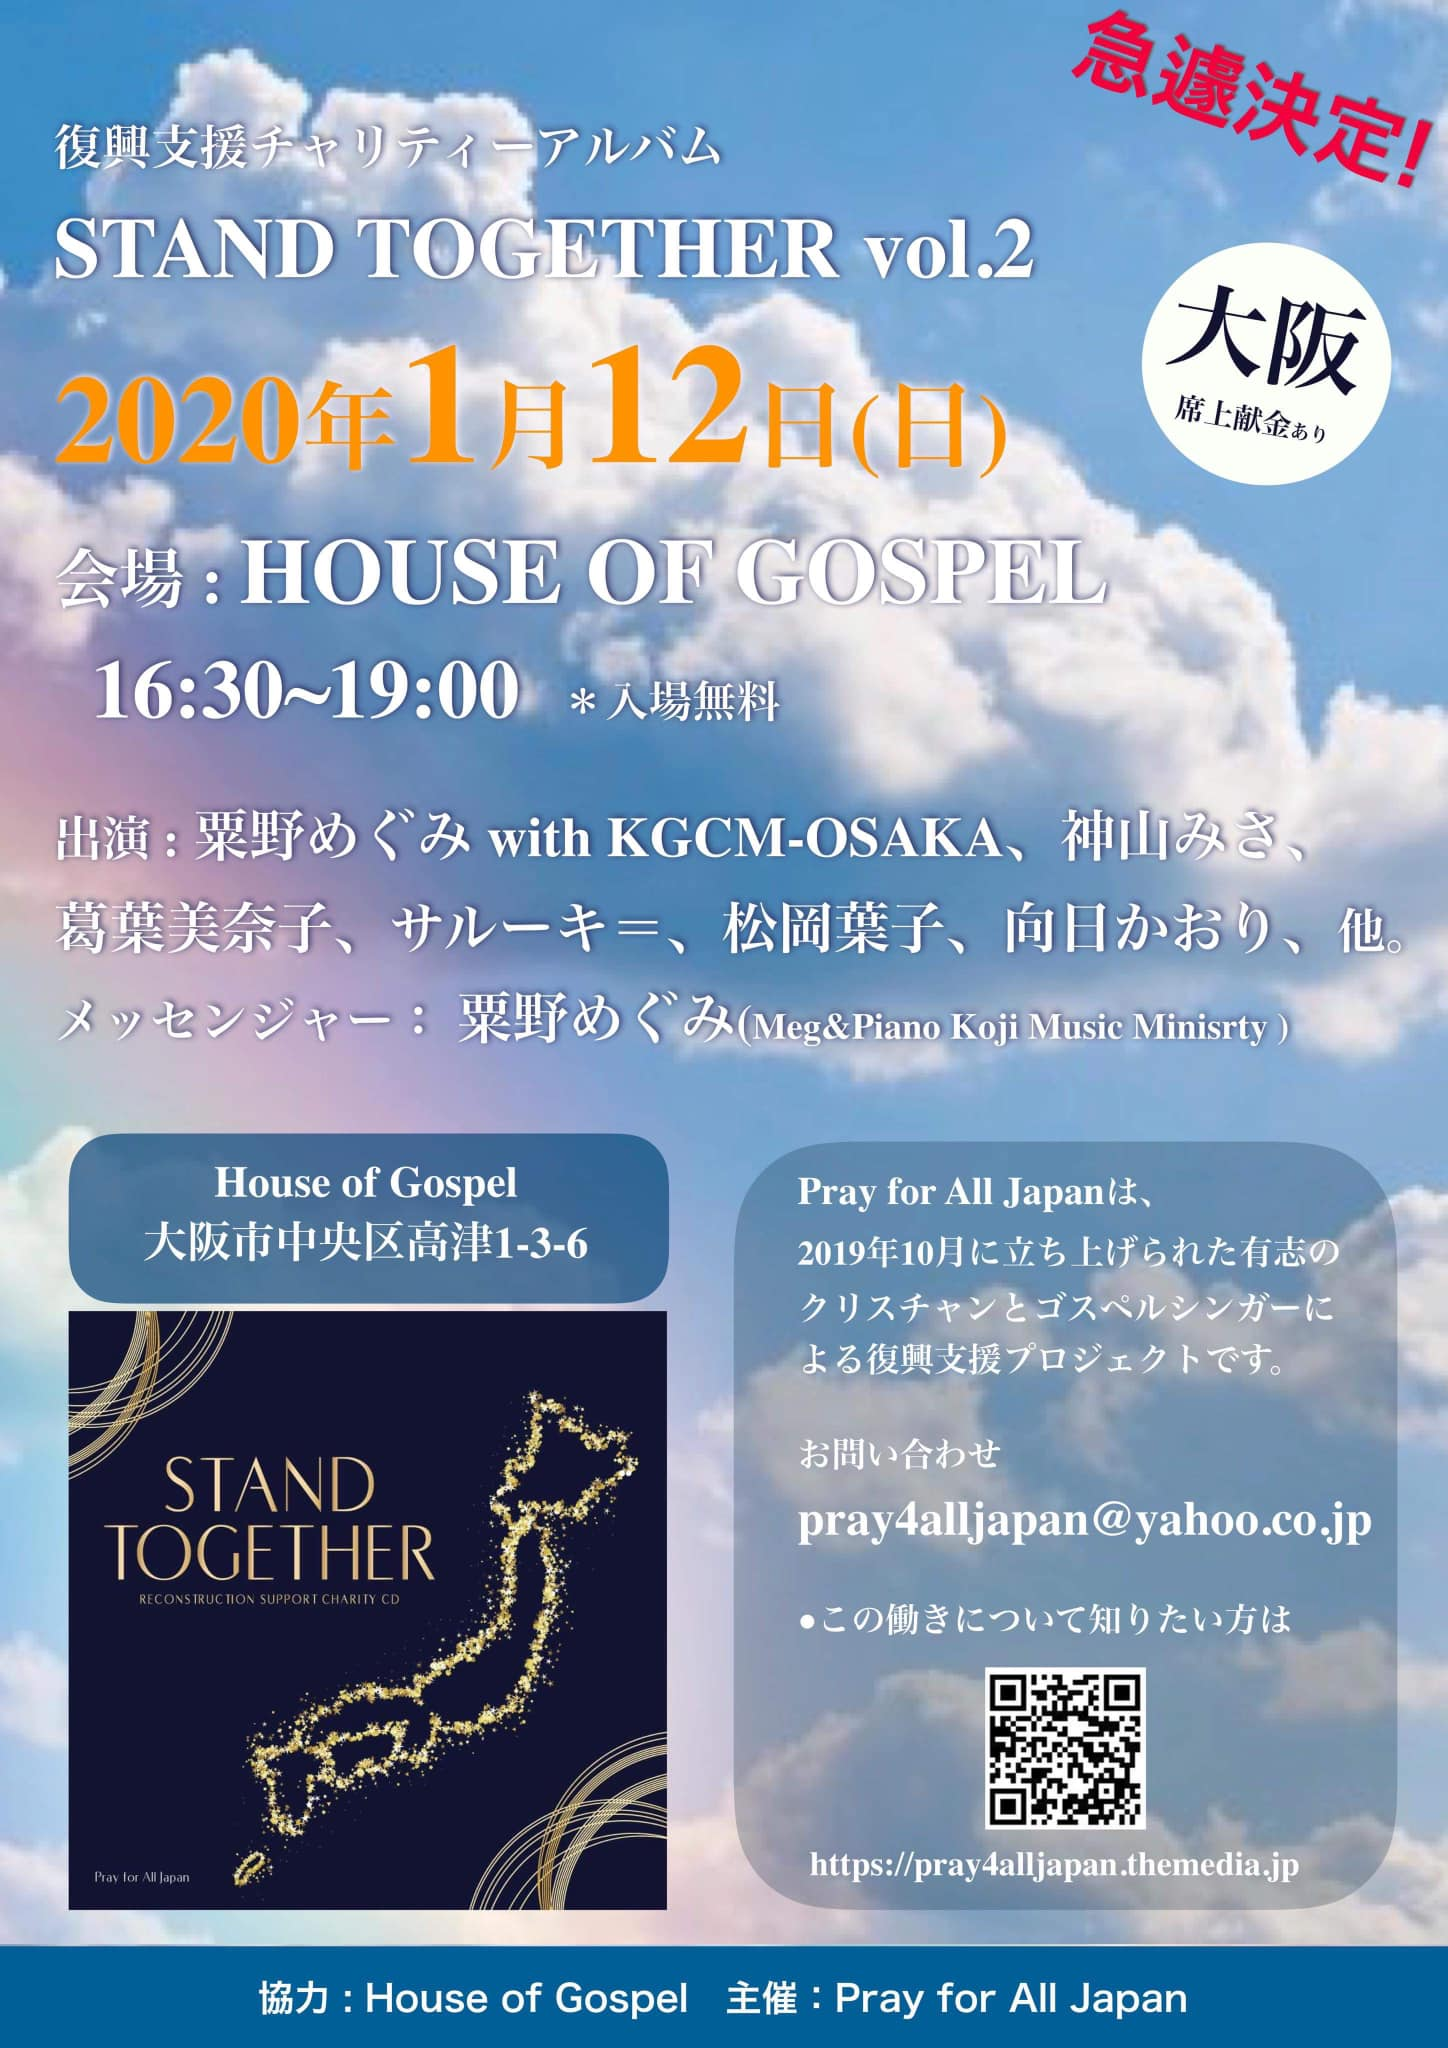 2020/01/12 STAND TOGETHER 2 チラシ